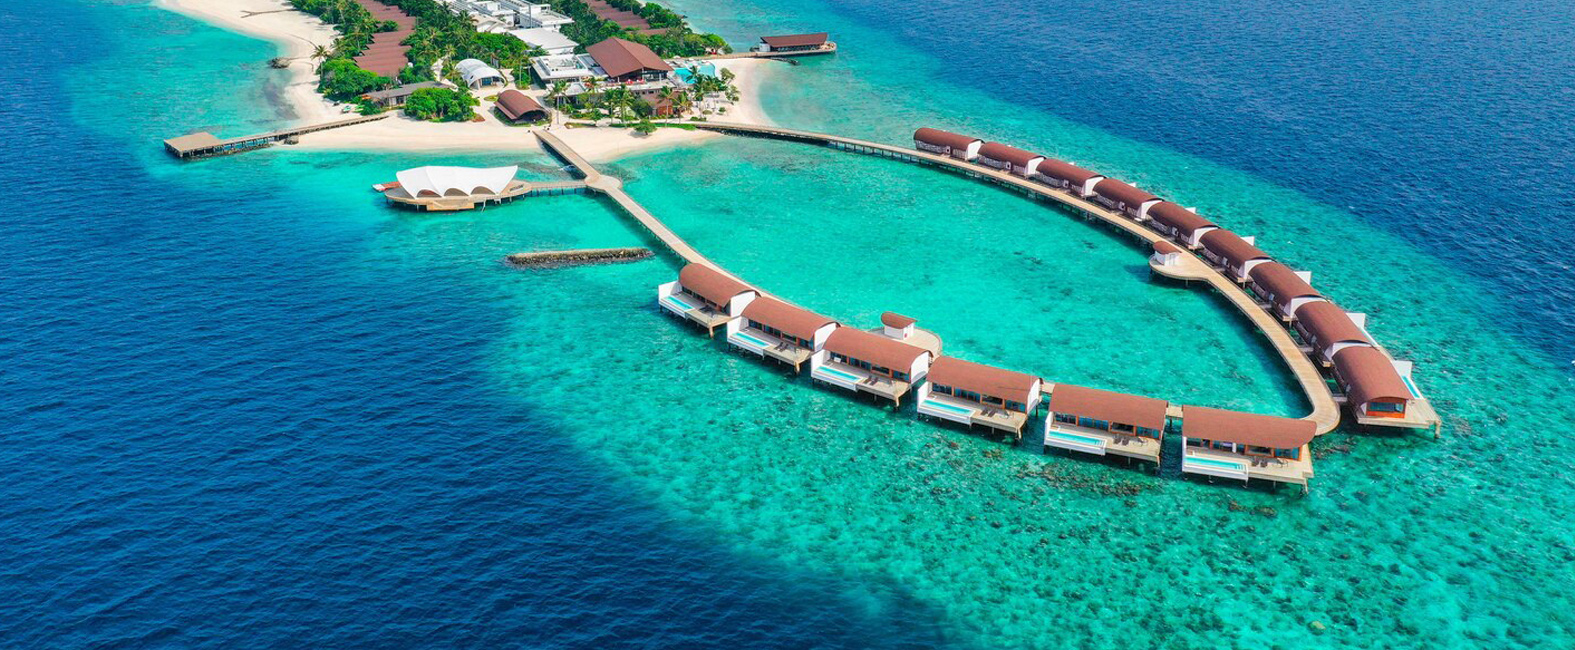 westin-maldives-banner-karusan-travels